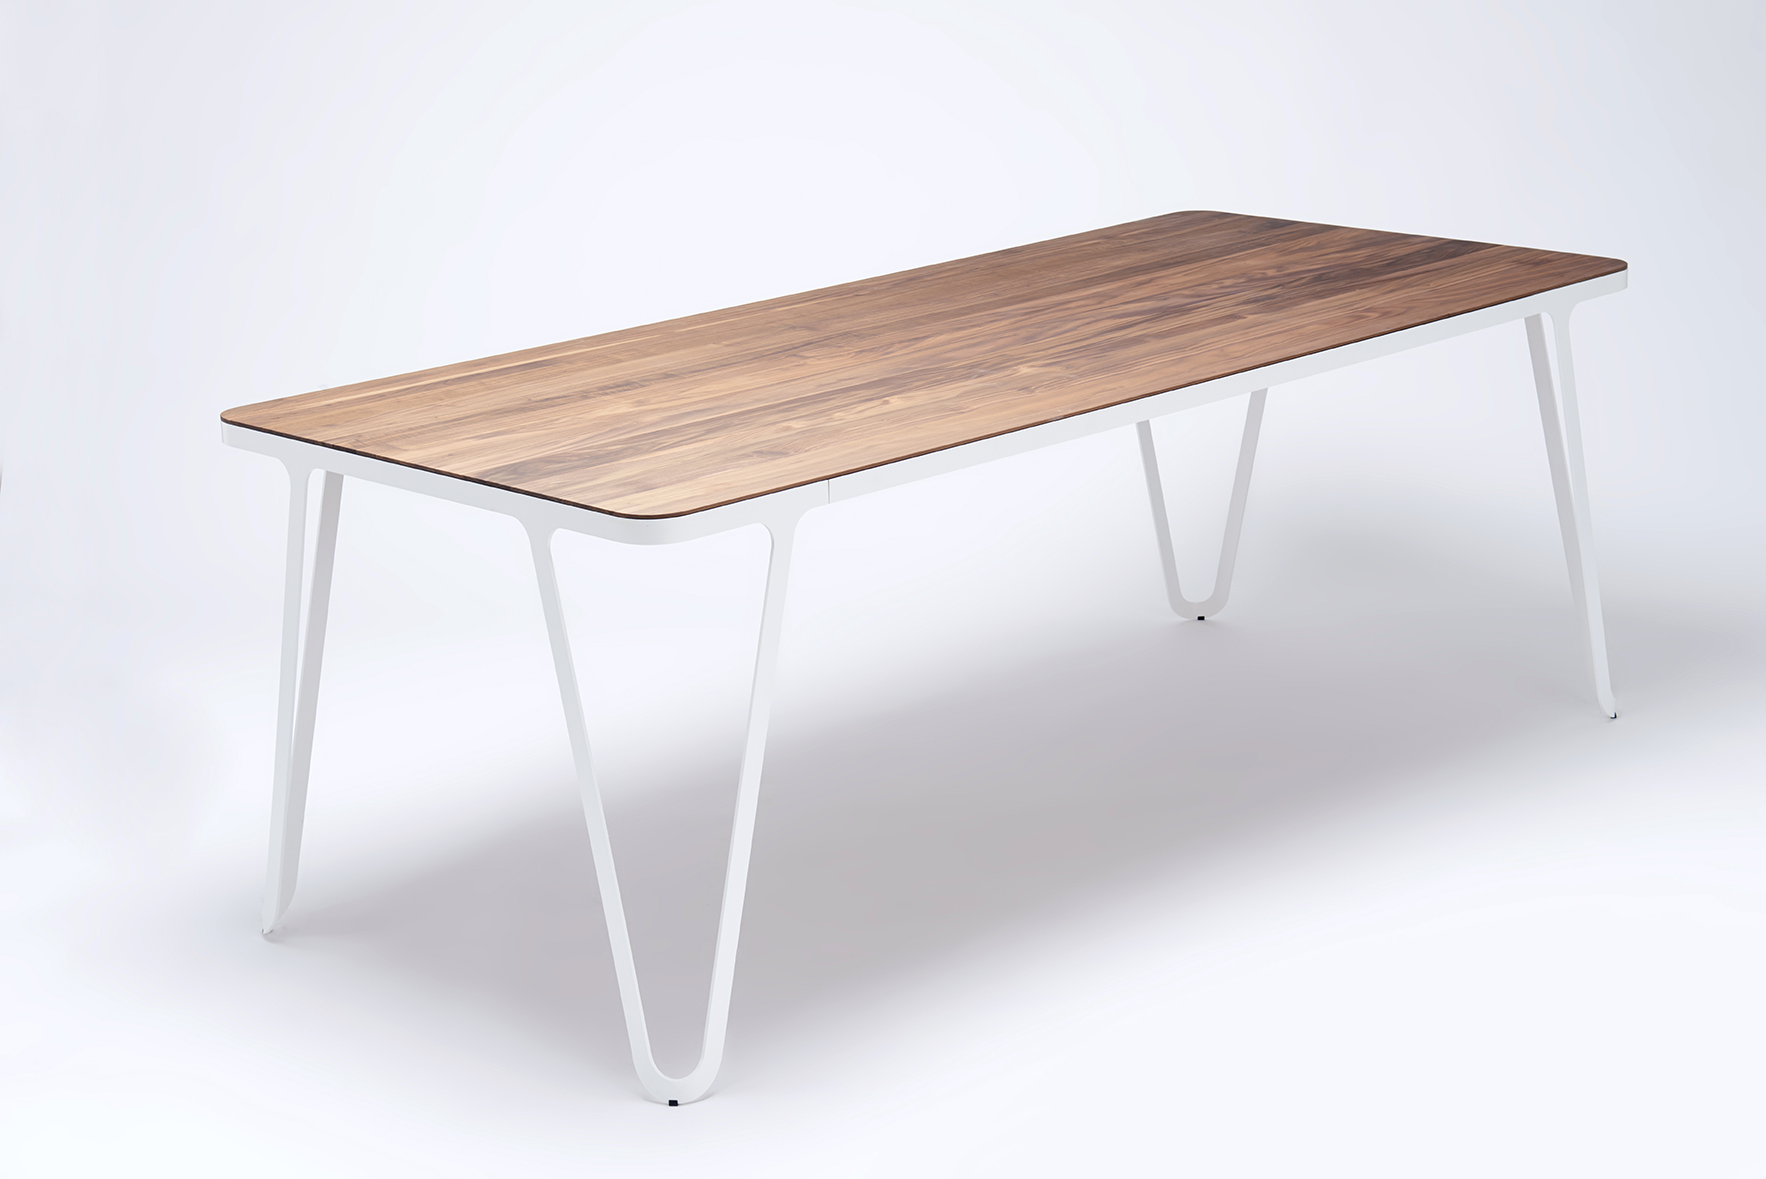 Futuristic shaped aluminium table frame with solid wood top